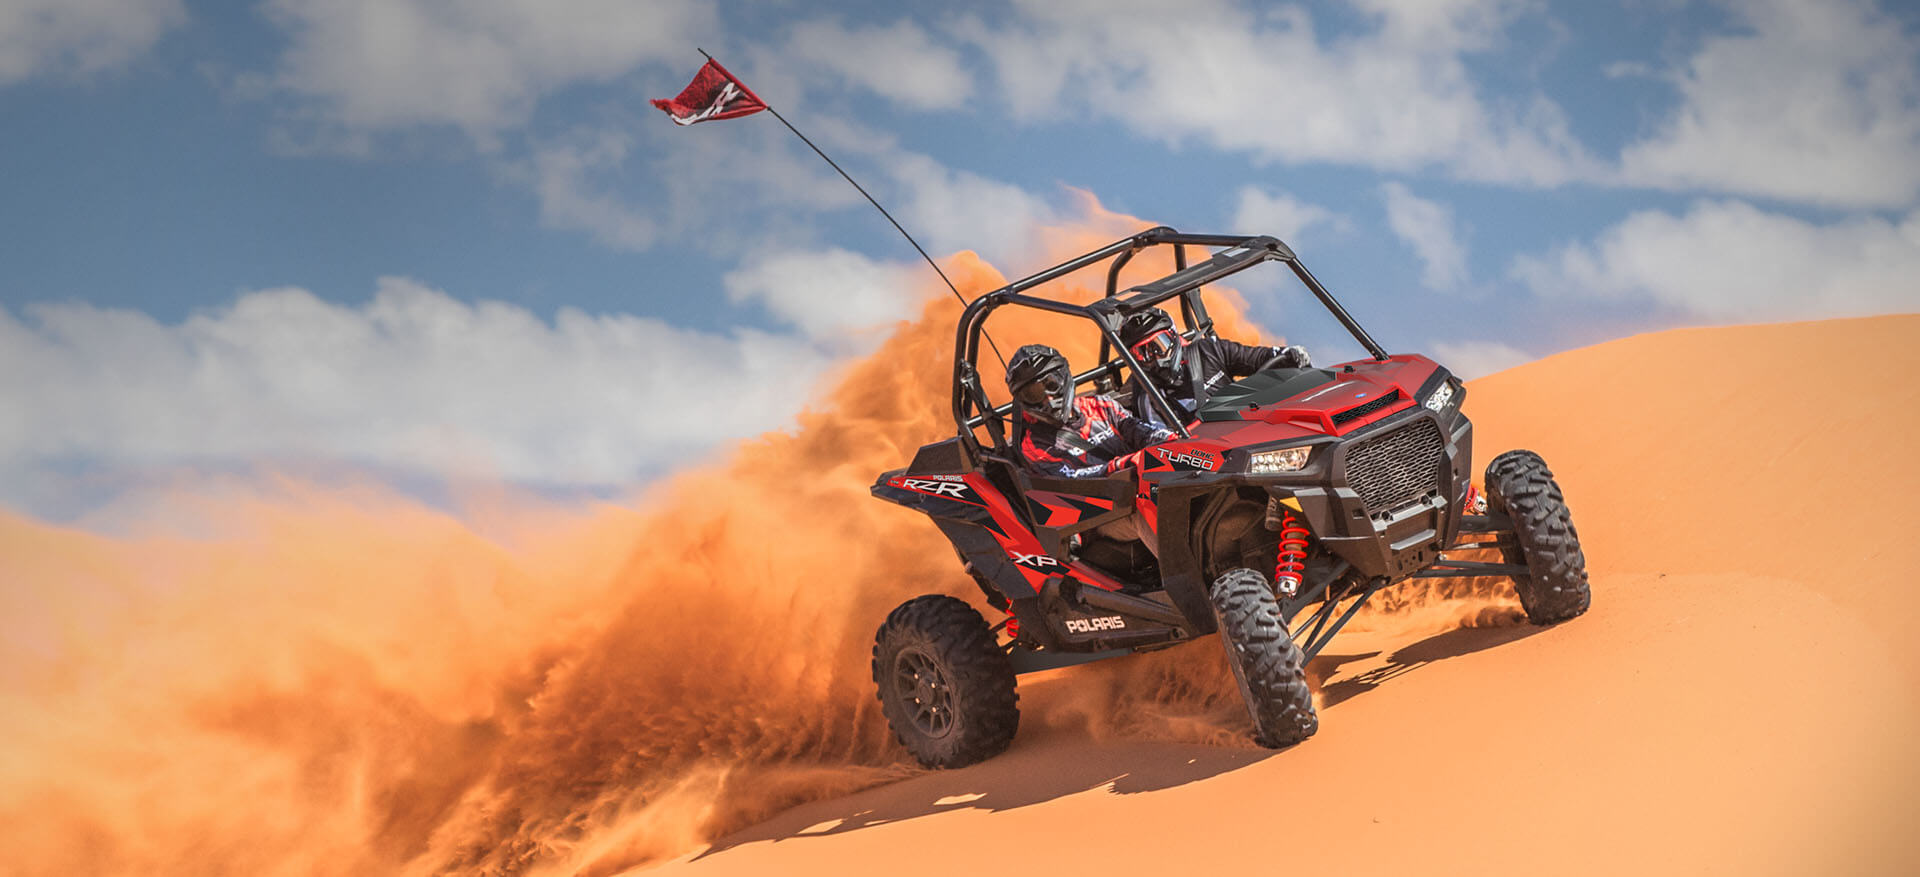 rzr-xp-turbo-fox-edition-location-1-lg